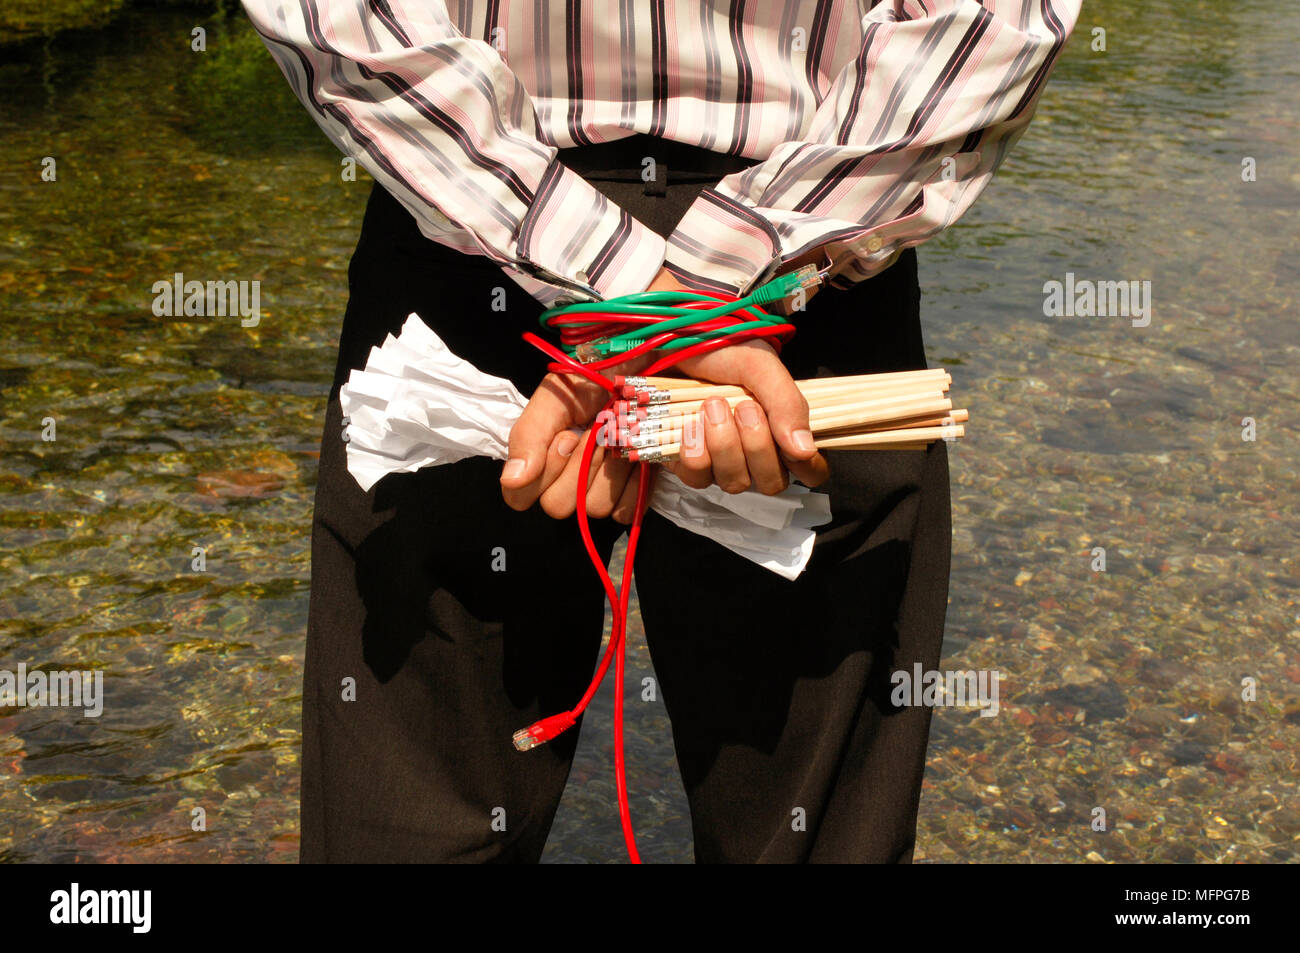 Mid section view of a man standing near a river with his hands tied behind his back   Ref: CRUSC_10015_018  Compulsory Credit: Stuart Cox/Photoshot - Stock Image